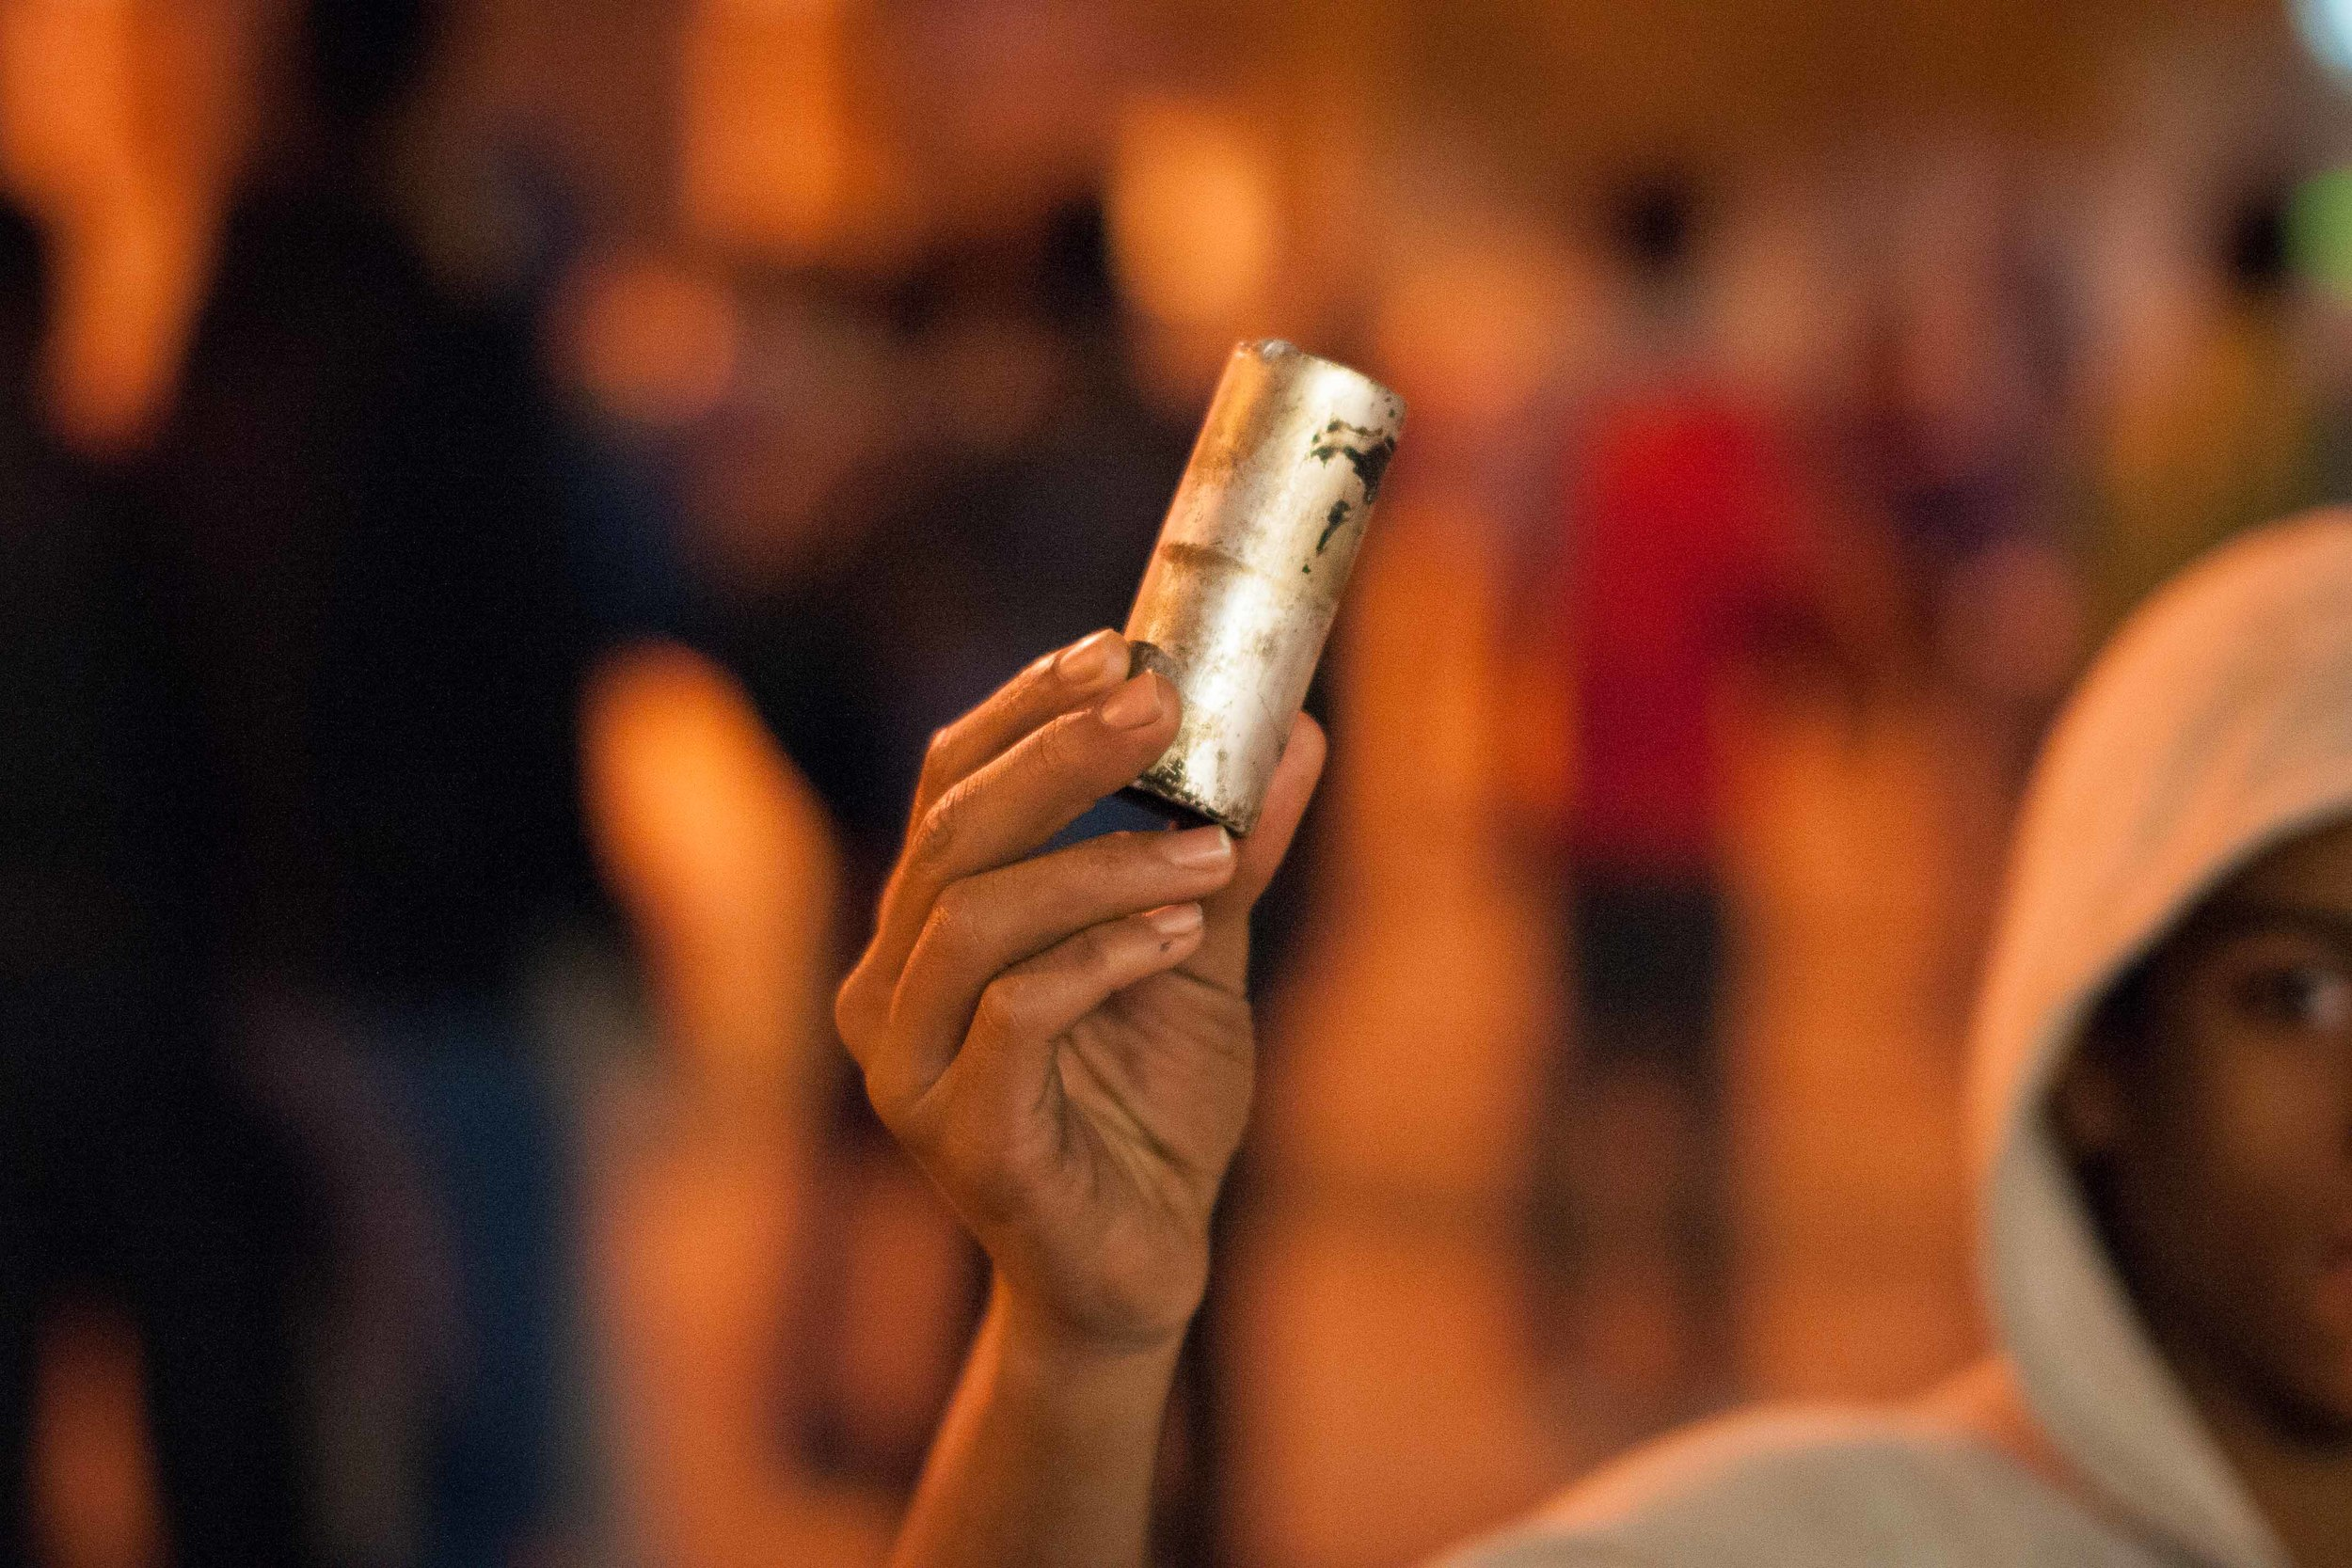 A child holds up one of the canisters that had been shot from the police. The manufacture date for many of the canisters was 2012, meaning it is much more potent than last year's gas, but also dissipates quicker.